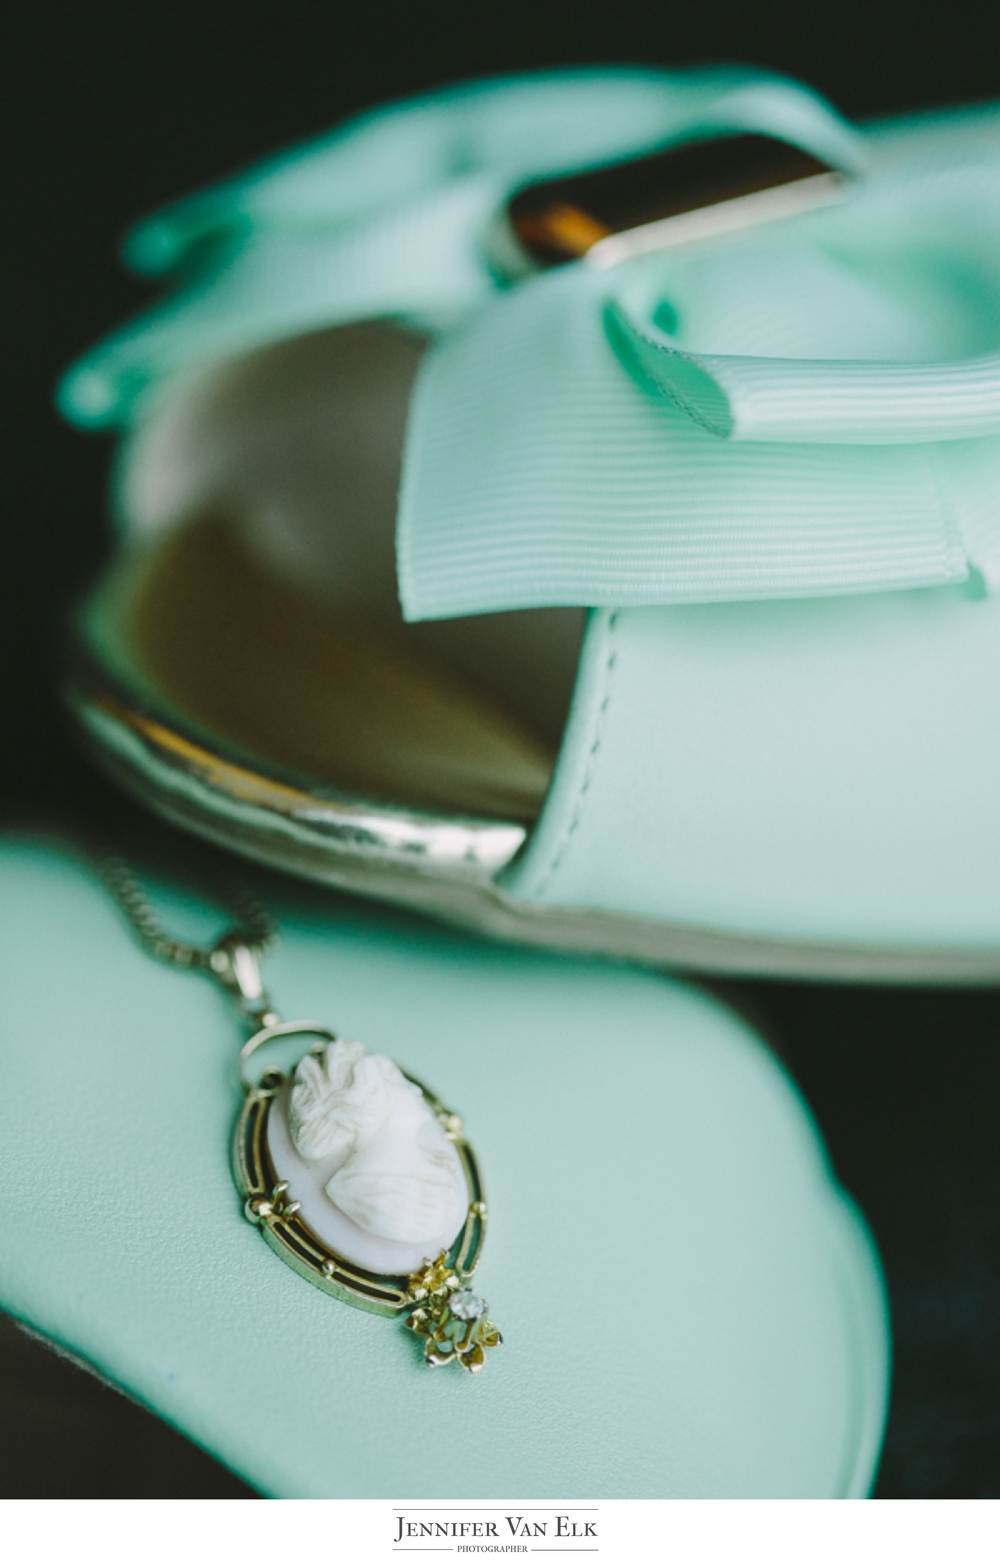 003 indianapolis bride necklace and shoes.jpg